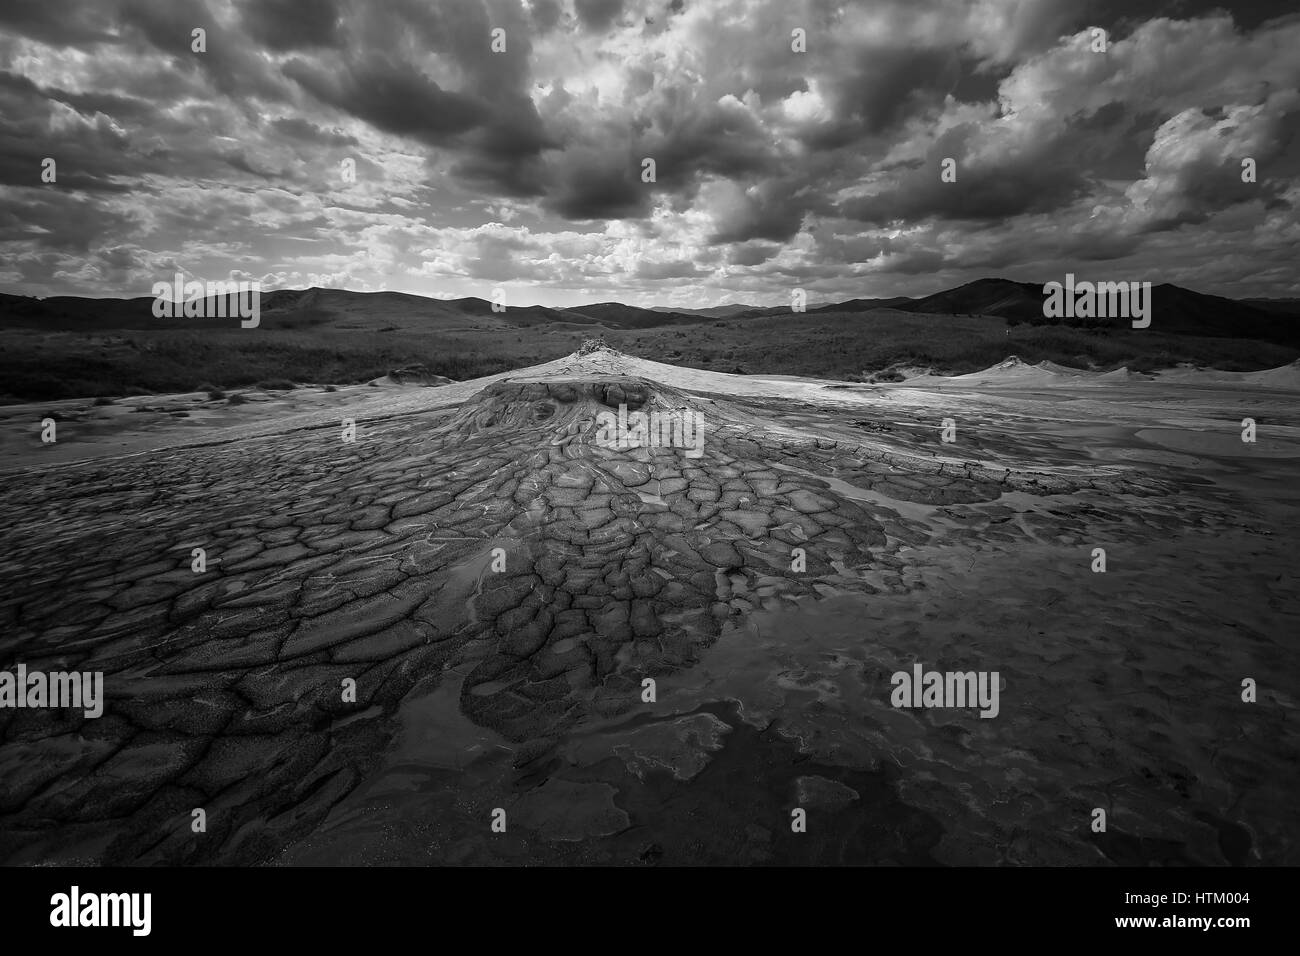 Picture of a mud volcano - Stock Image